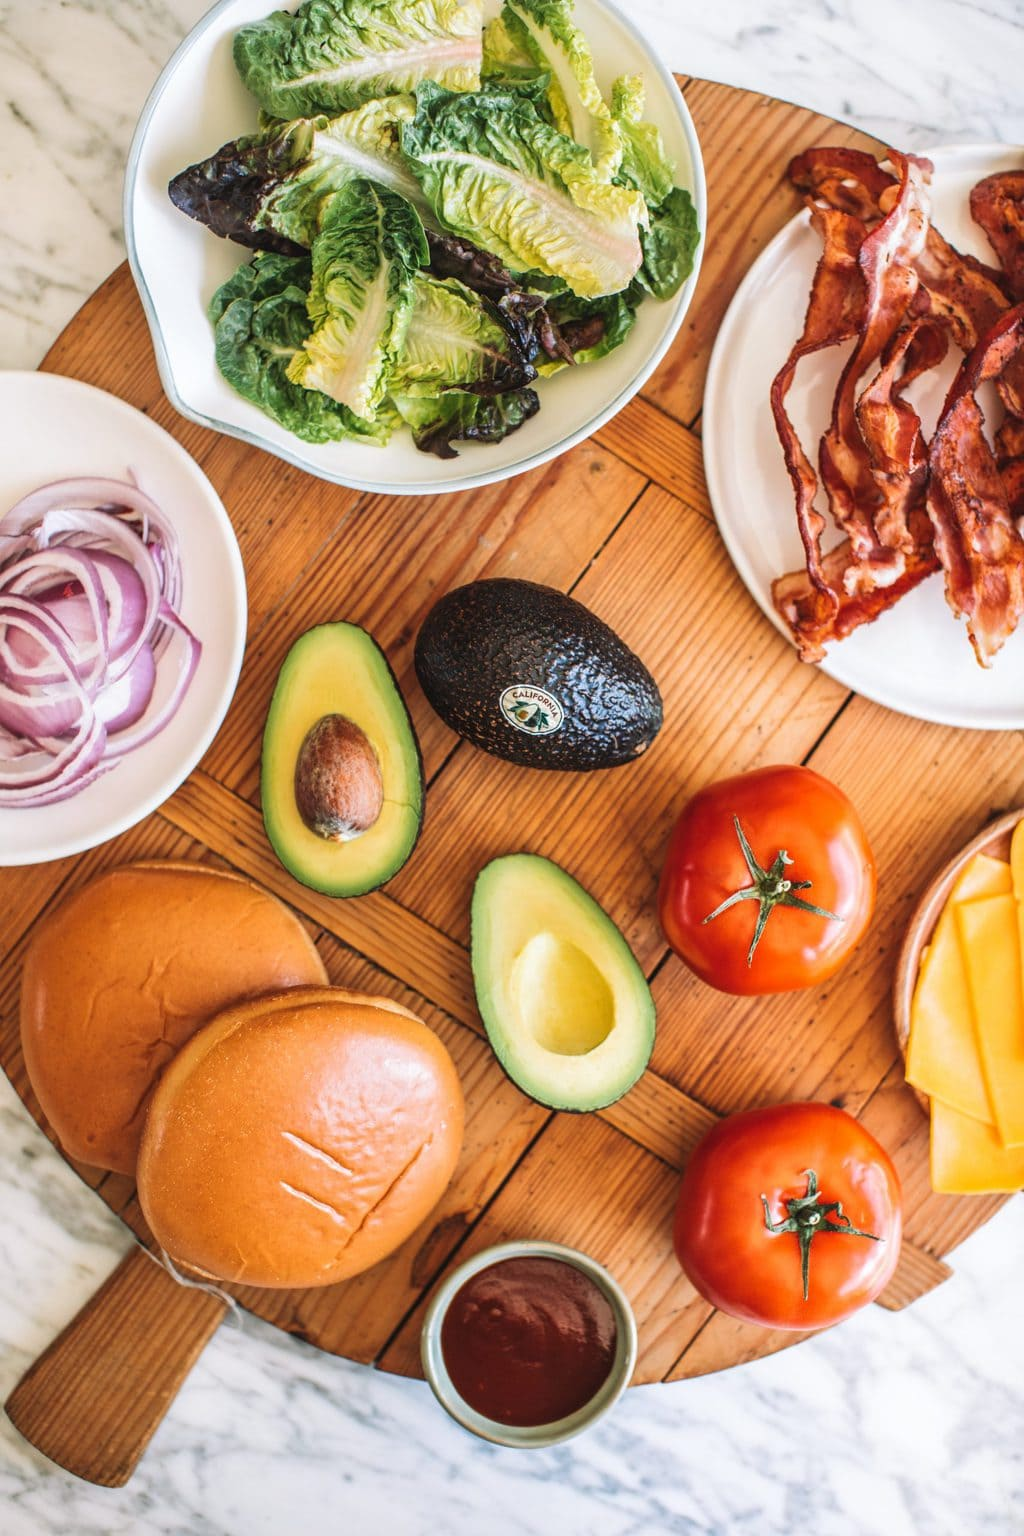 Red onions, lettuce leaves, crispy bacon, brioche buns, halved avocados, tomatoes and cheddar cheese slices.